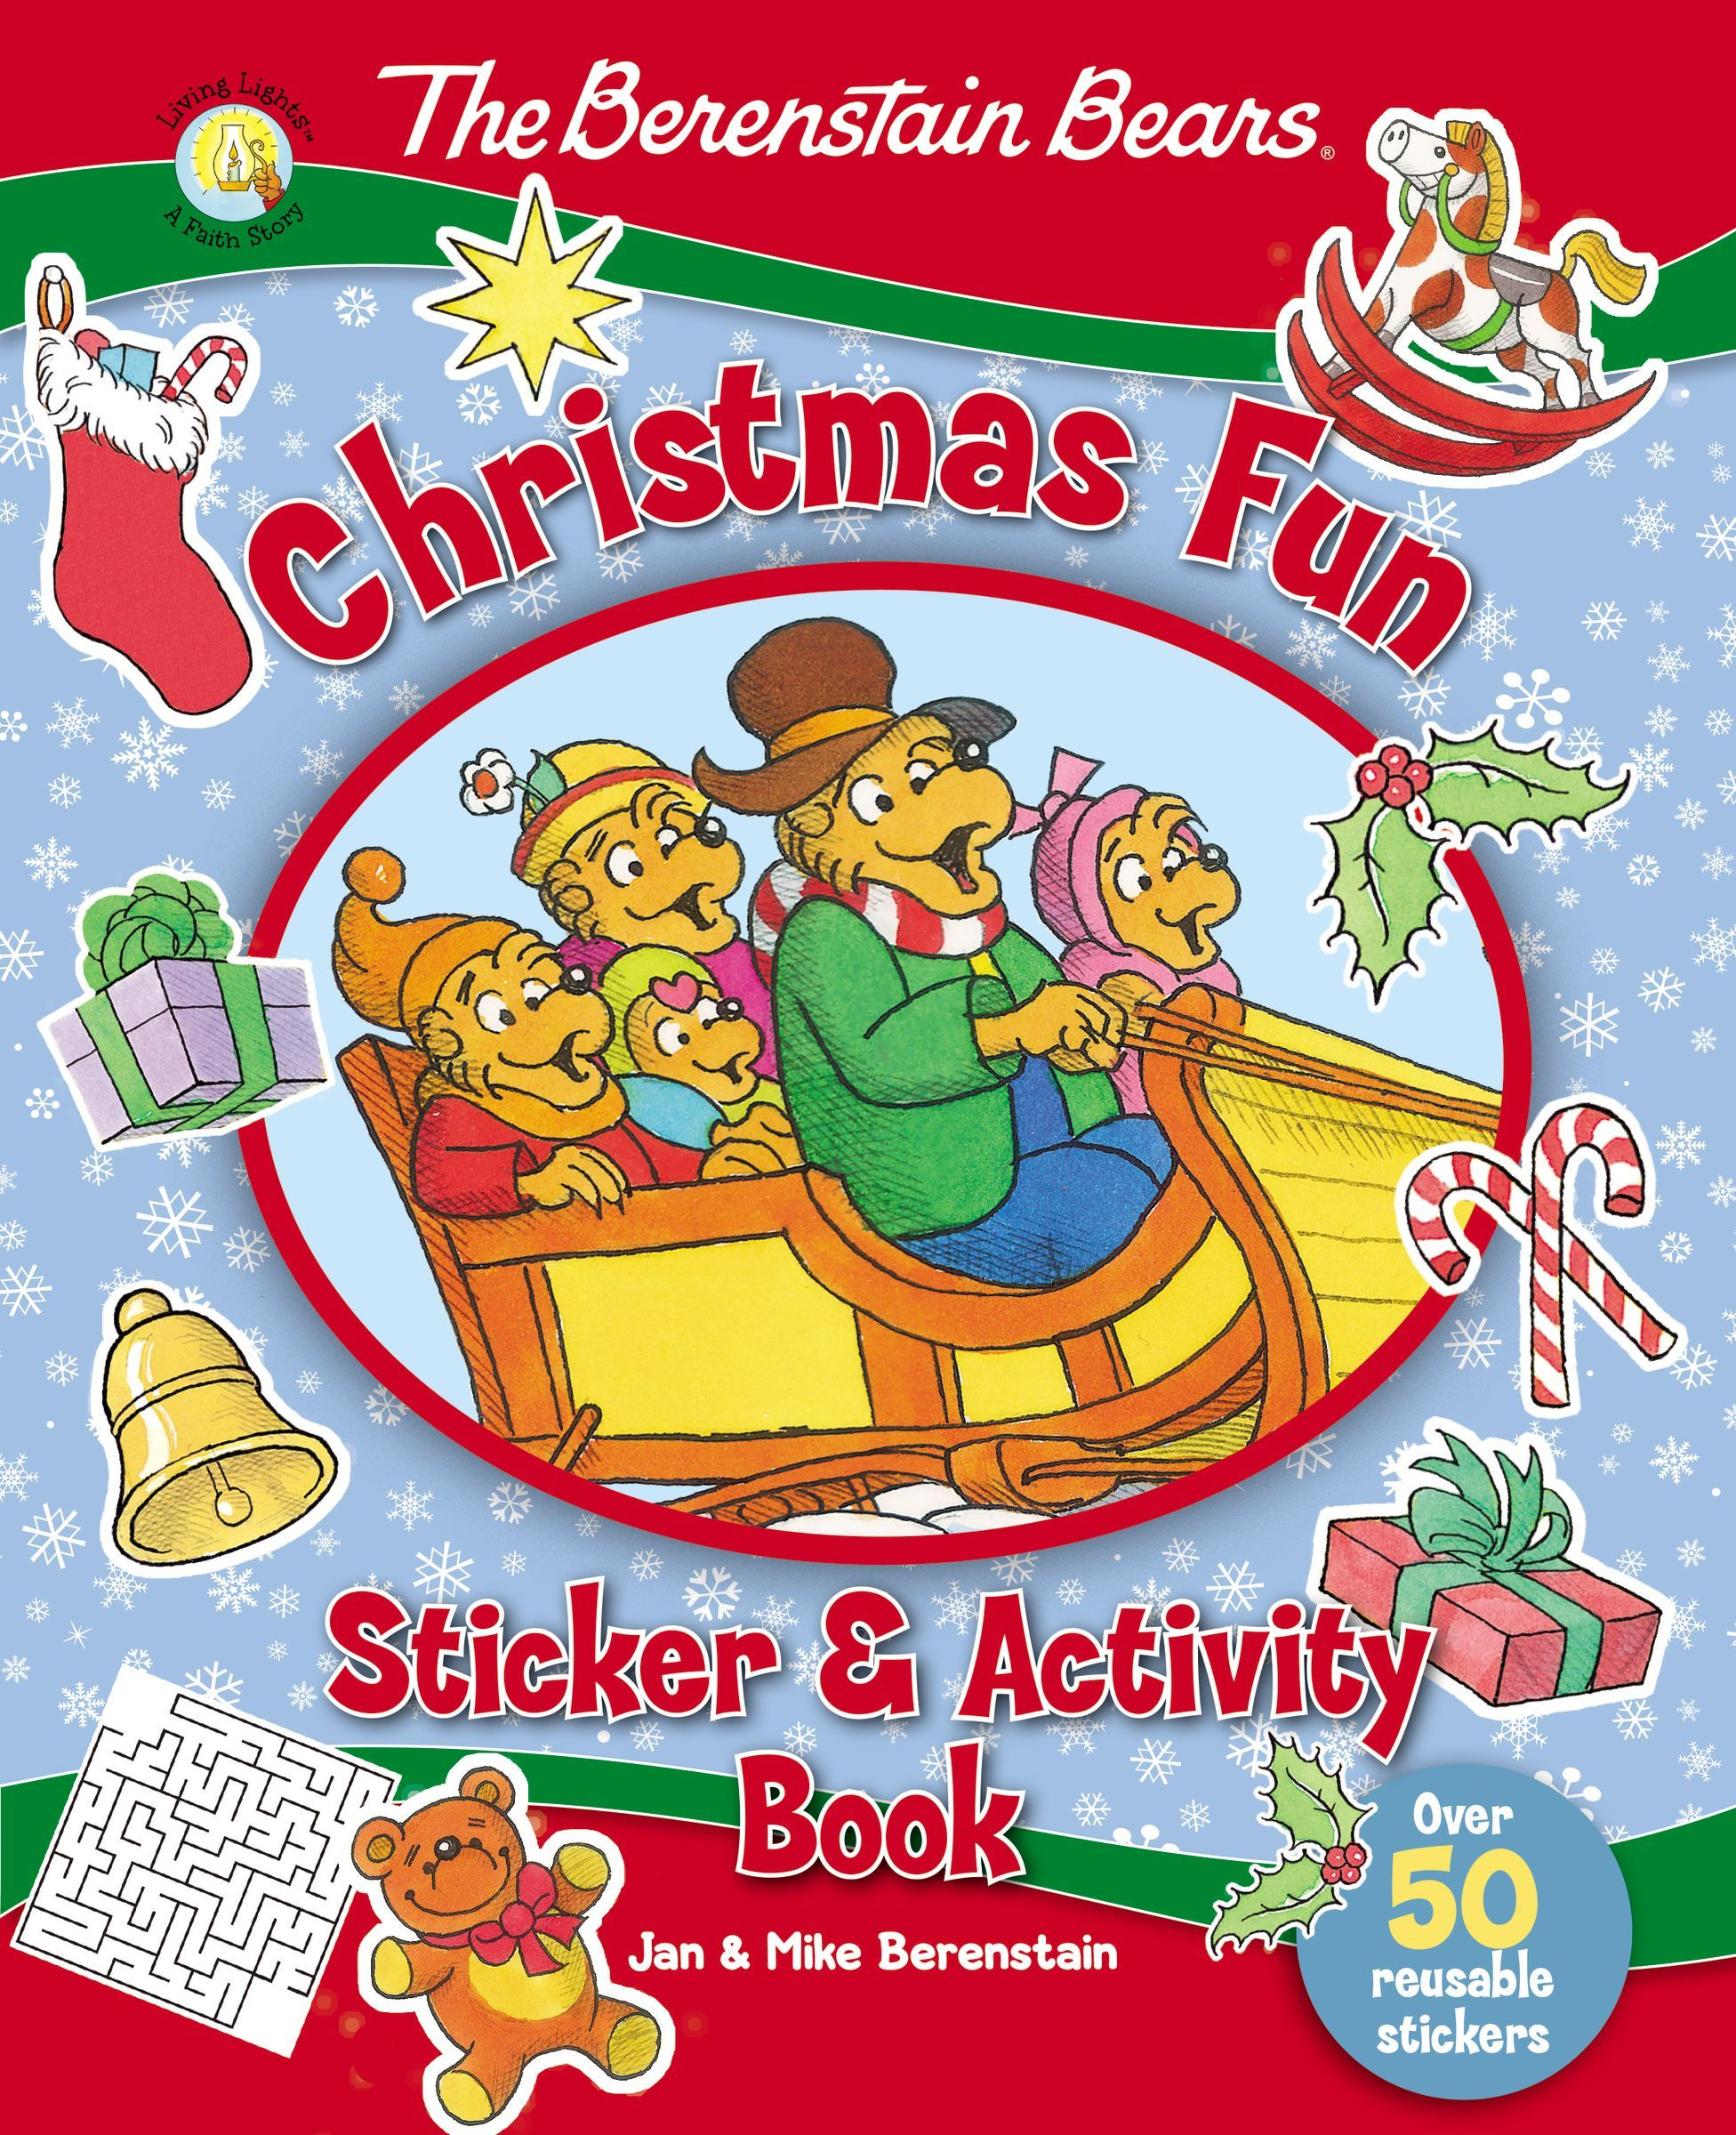 Berenstain Bears Christmas Fun Sticker and Activity Book